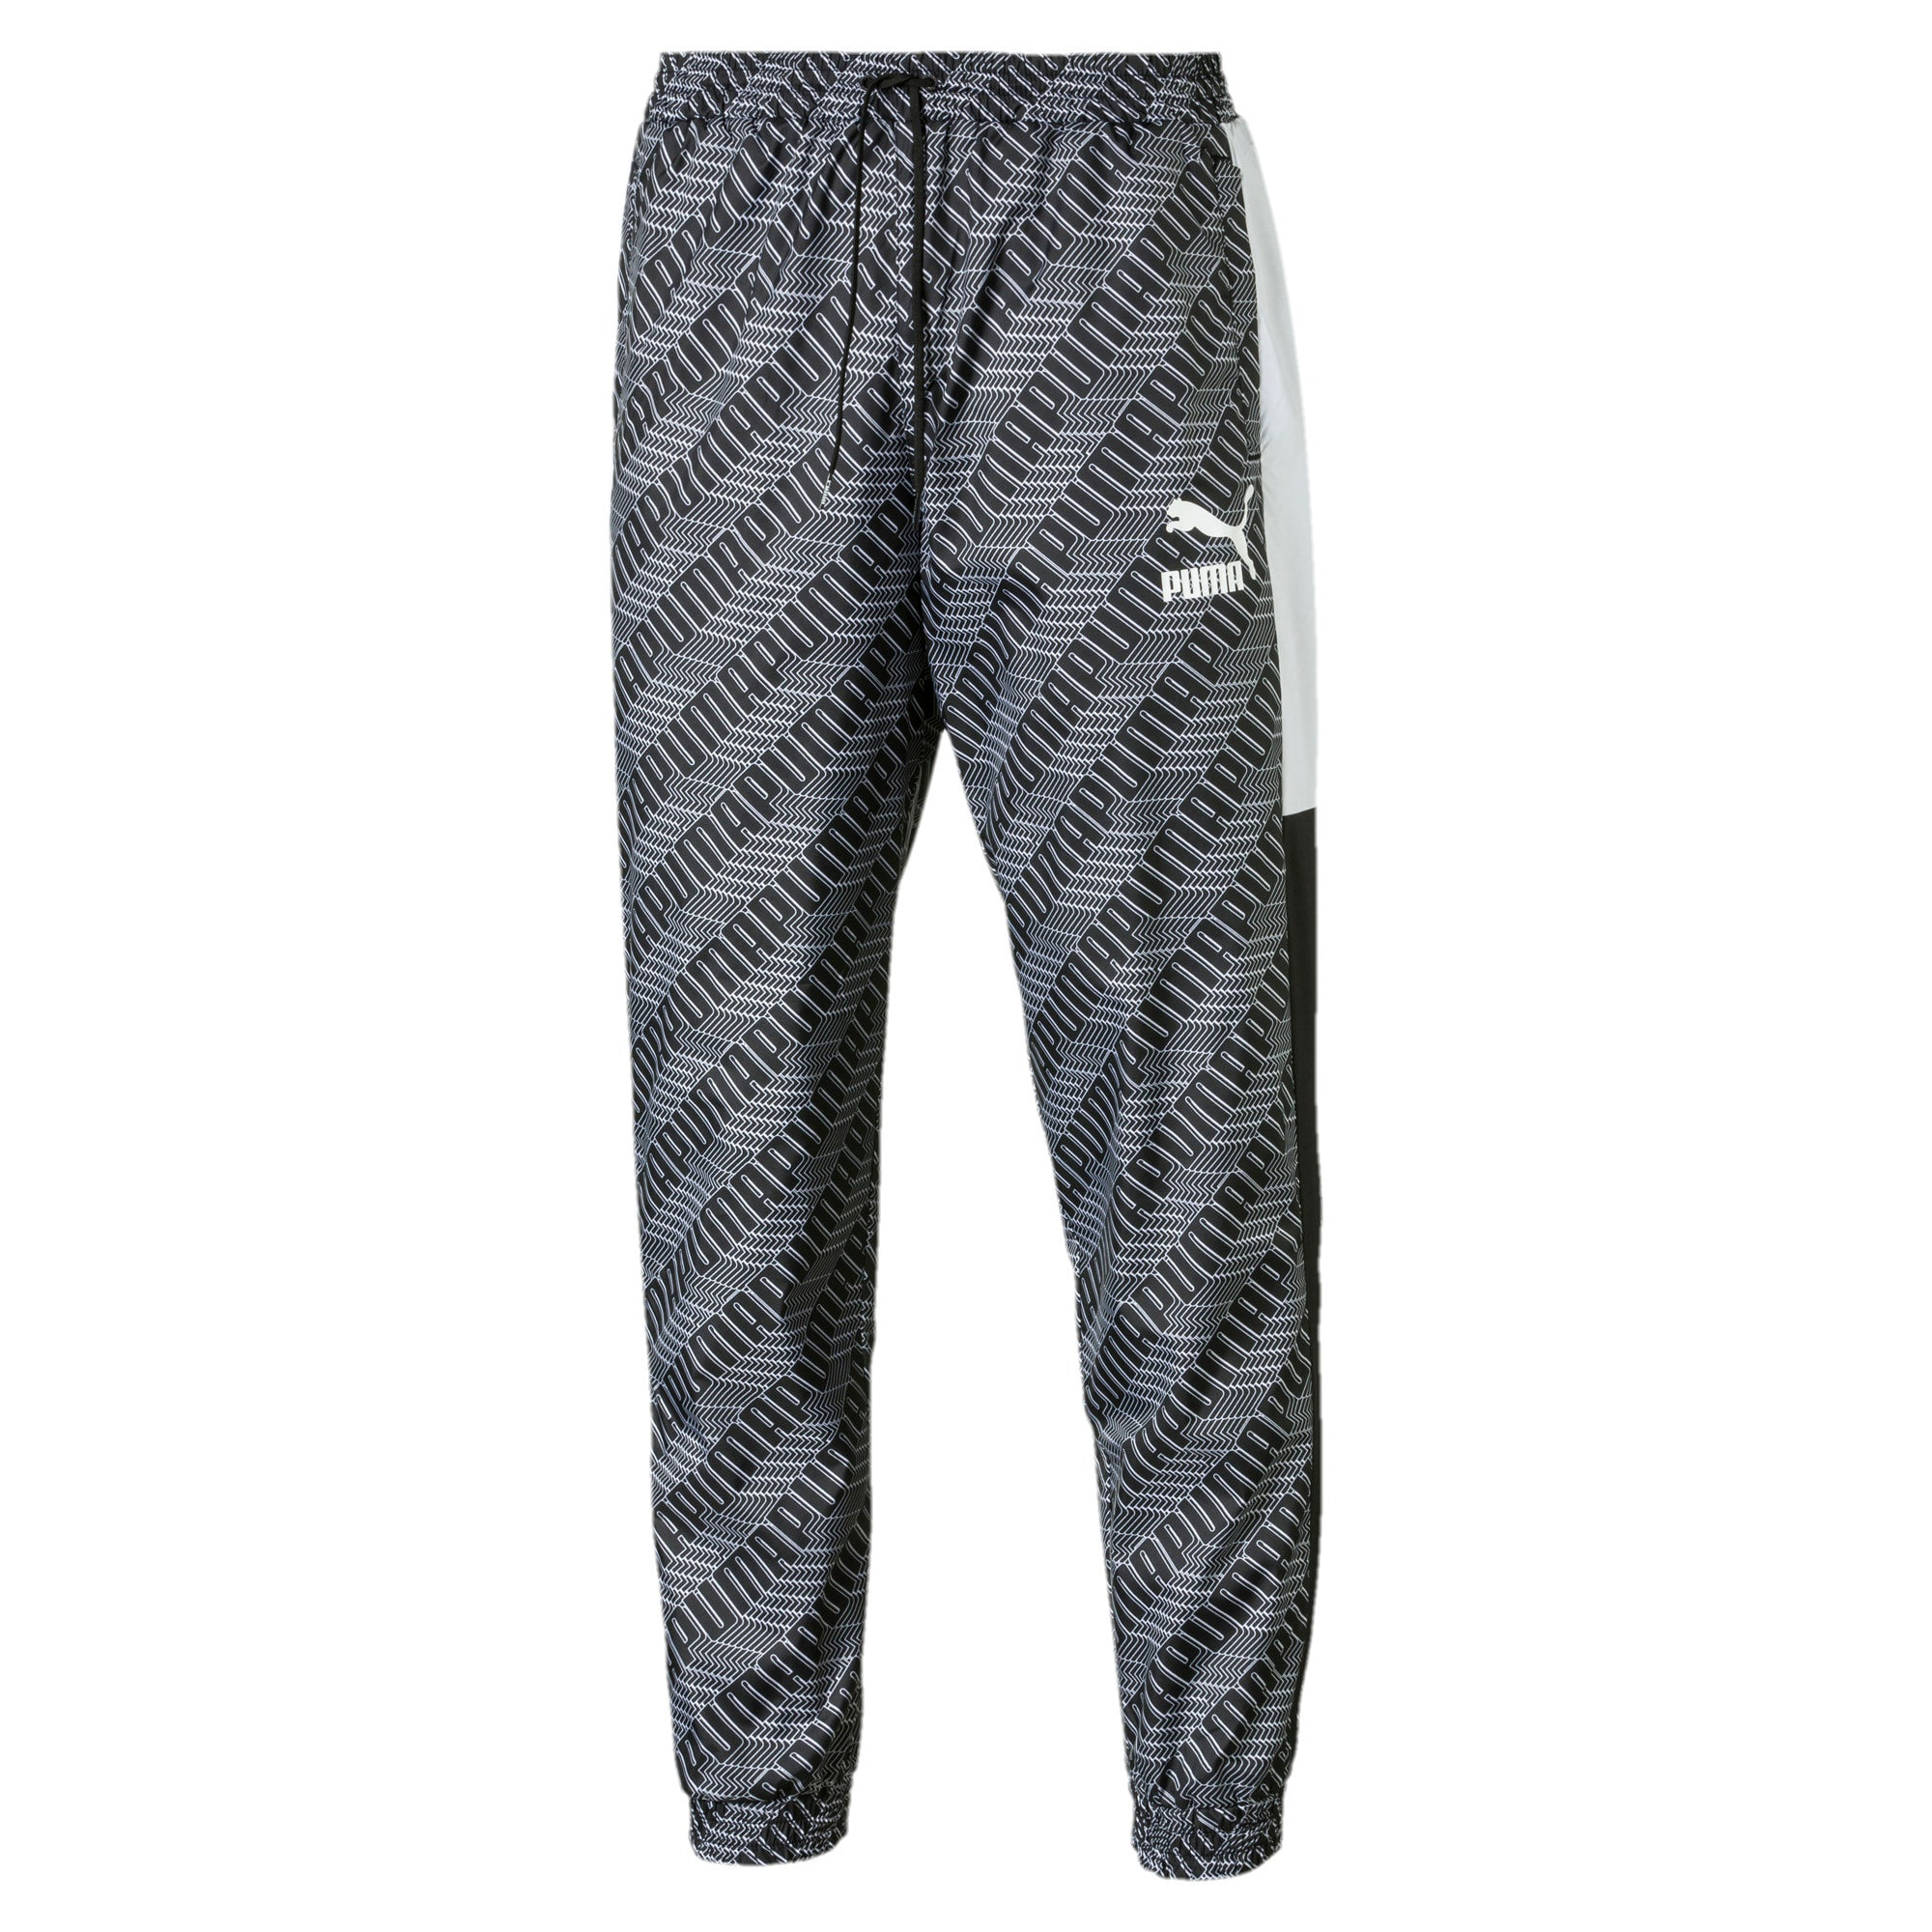 Thumbnail 1 of T7 AOP Panel Men's Track Pants, Puma Black-Repeat logo, medium